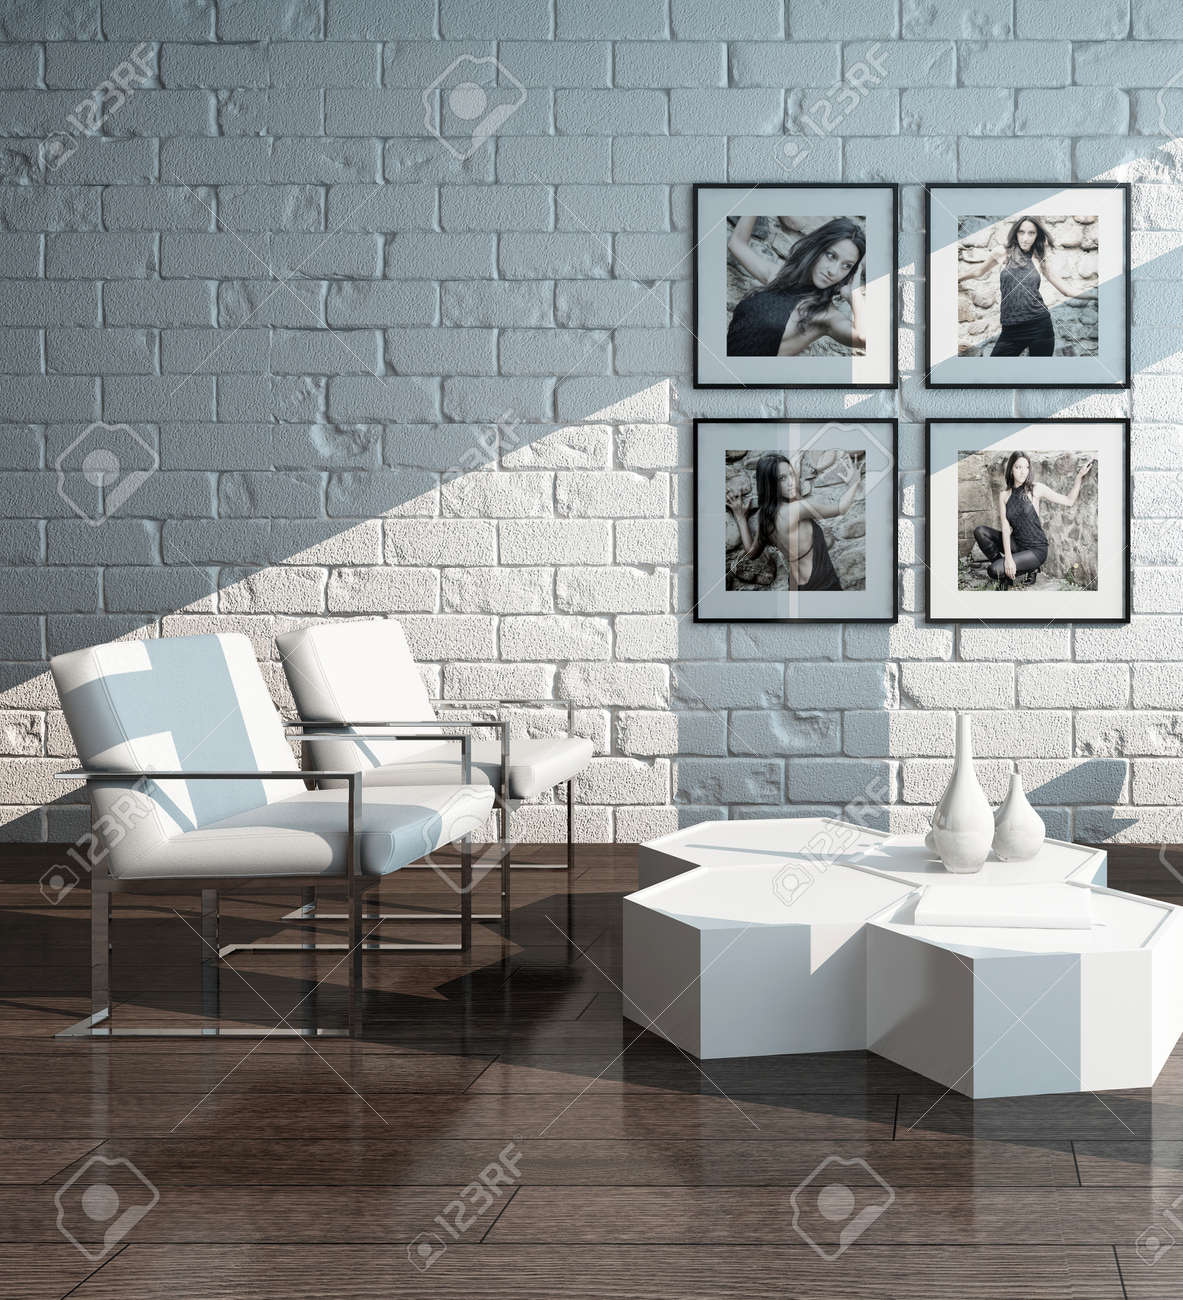 Picture Of Minimalist Living Room Interior With White Brick Wall